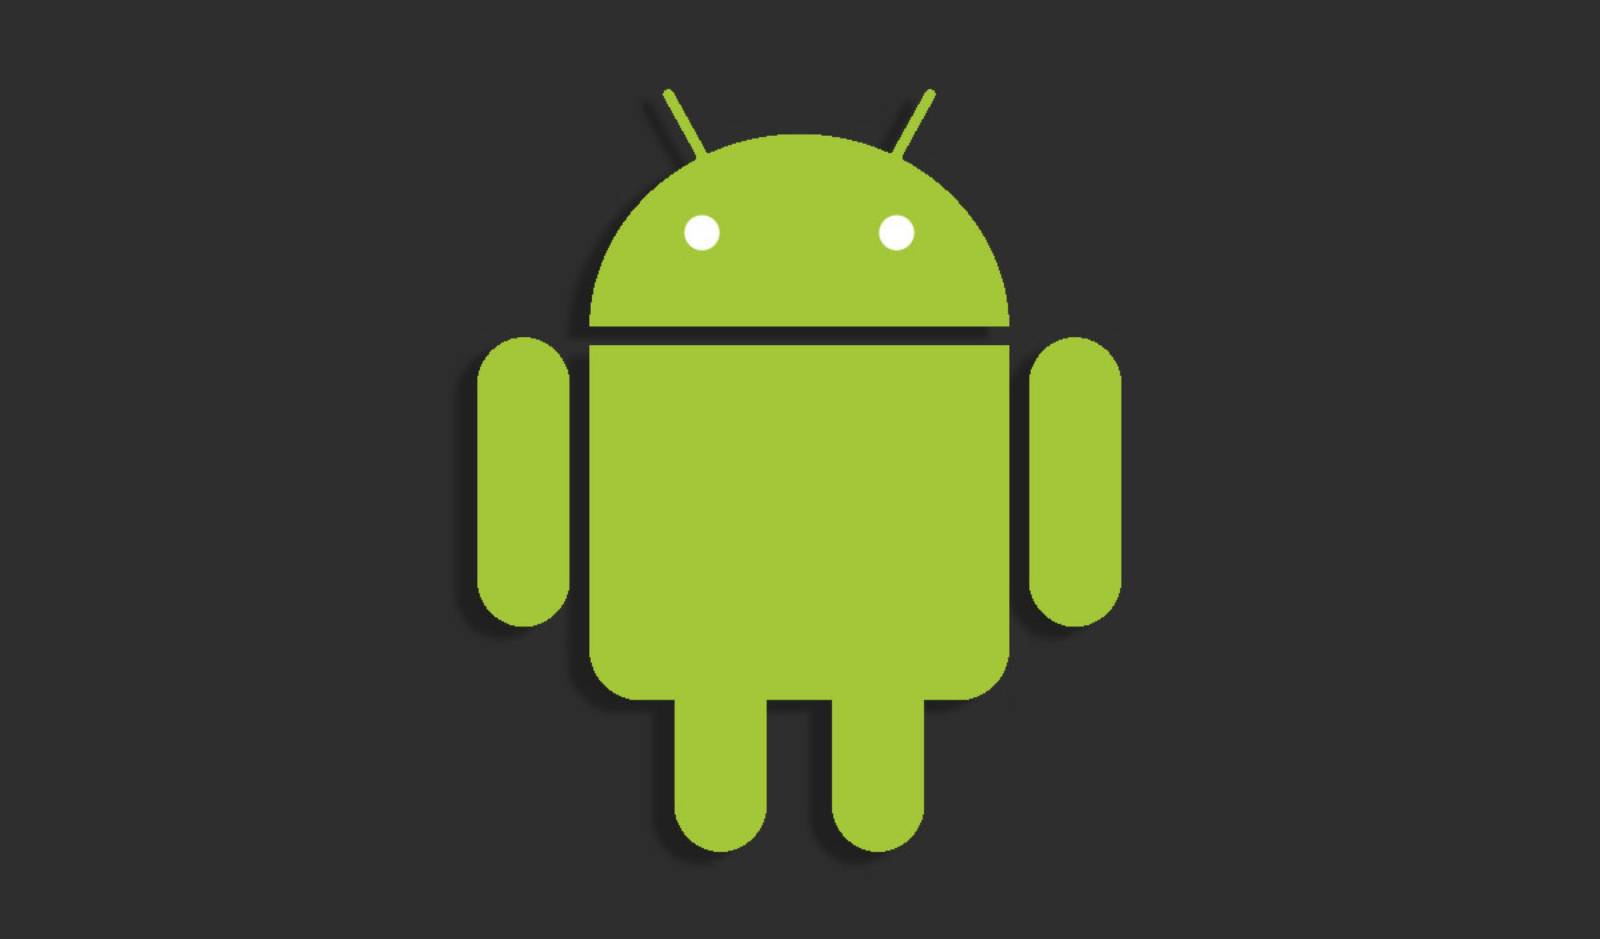 Android darq